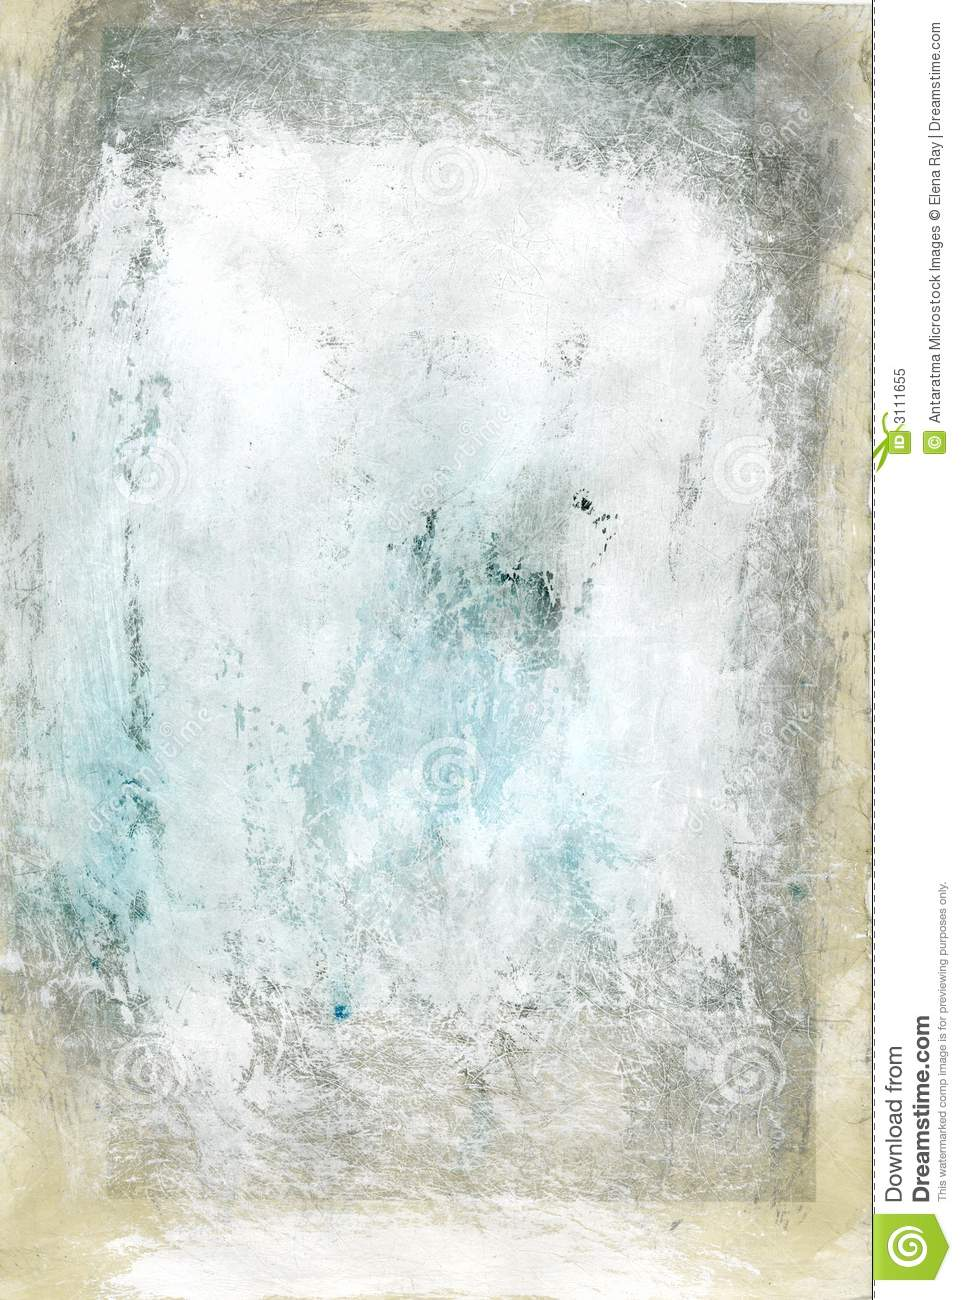 Mostly White Abstract Royalty Free Stock Photo Image